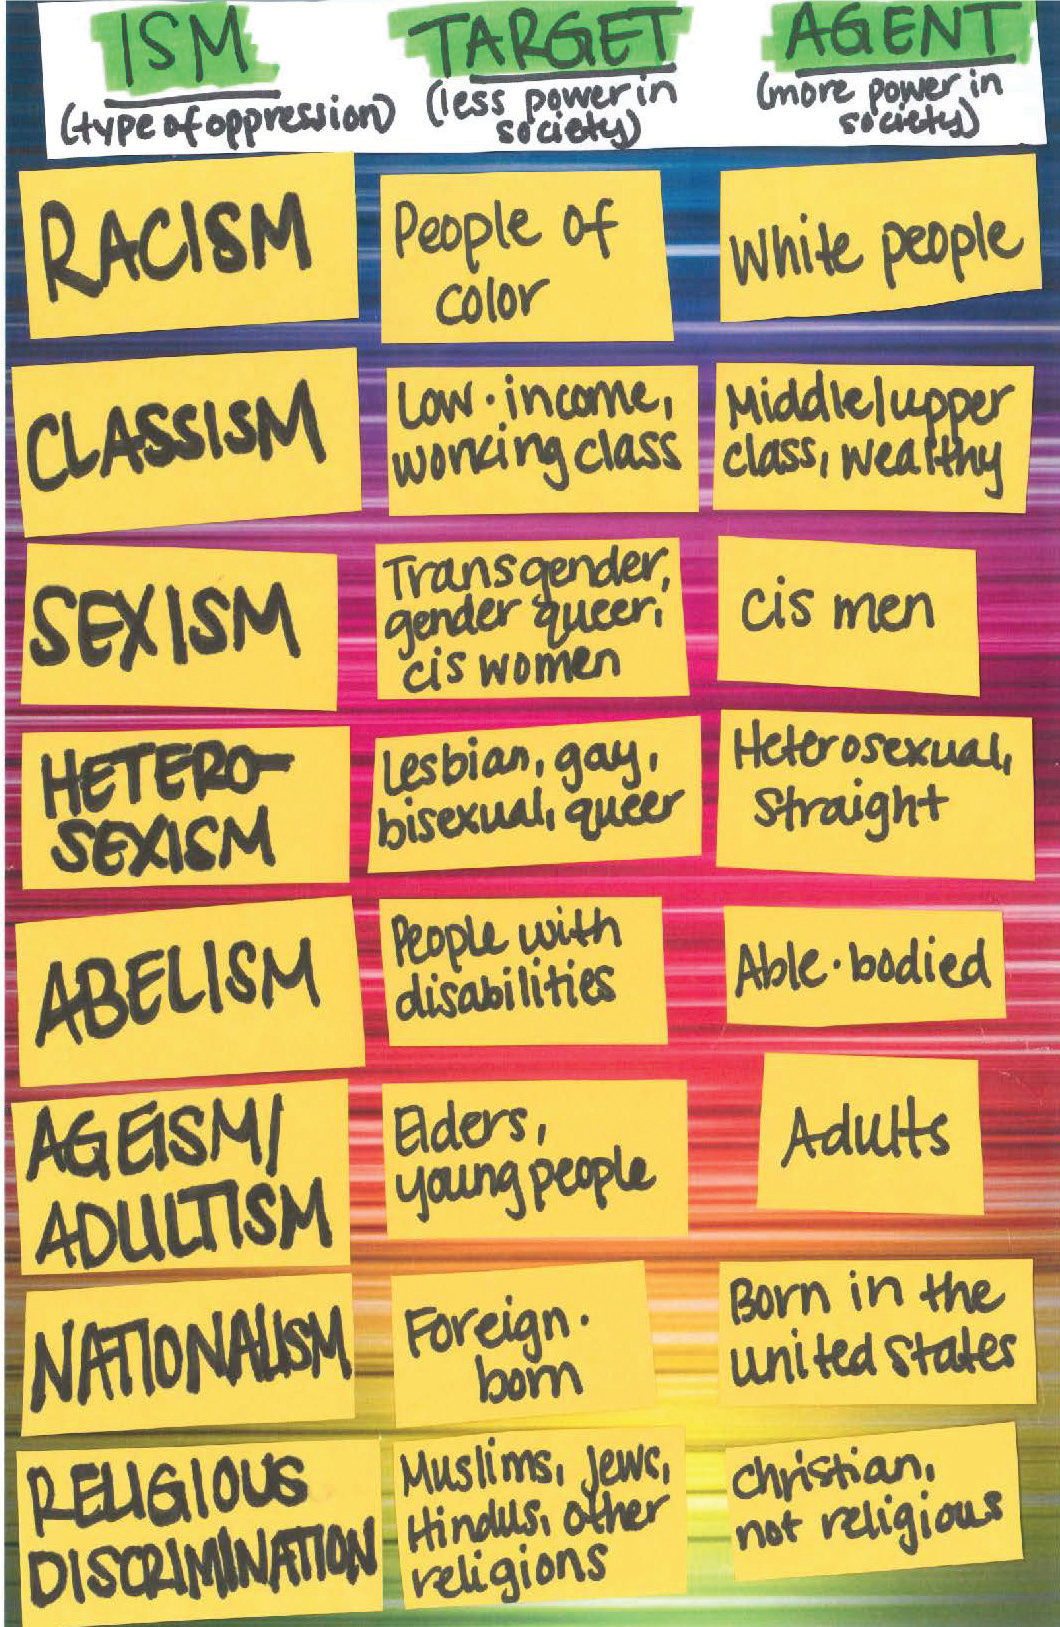 A hand drawn chart that breaks down different forms of oppression and which groups hold power over others. This is a page from the Crushin' It zine used in schools.